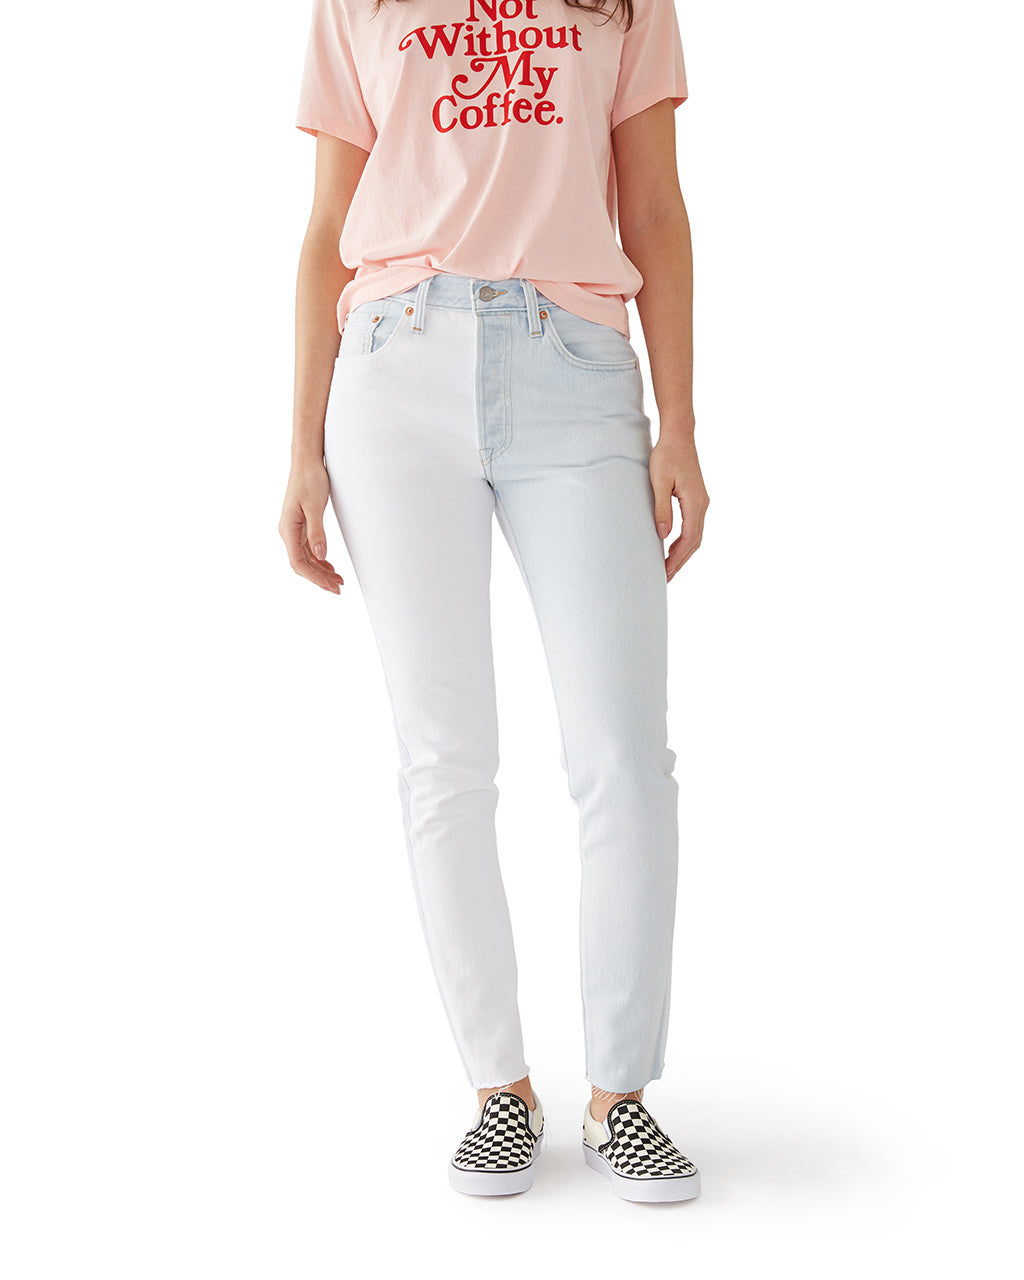 two faced jeans by levi s - jeans - ban.do 5755bc596f7